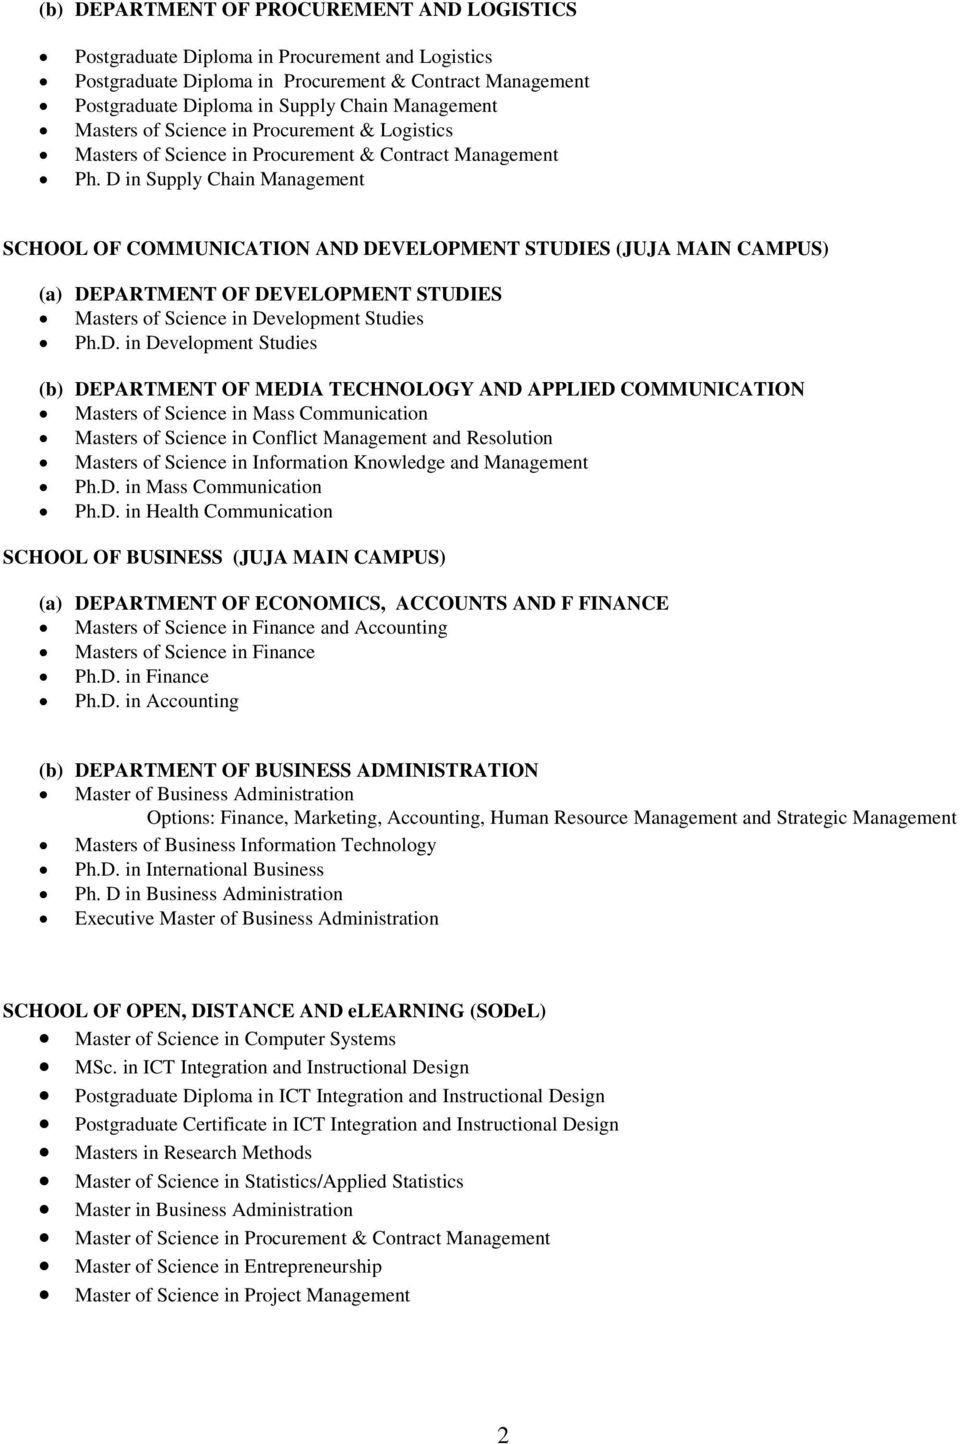 D in Supply Chain SCHOOL OF COMMUNICATION AND DEVELOPMENT STUDIES (JUJA MAIN CAMPUS) (a) DEPARTMENT OF DEVELOPMENT STUDIES Masters of Science in Development Studies Ph.D. in Development Studies (b)